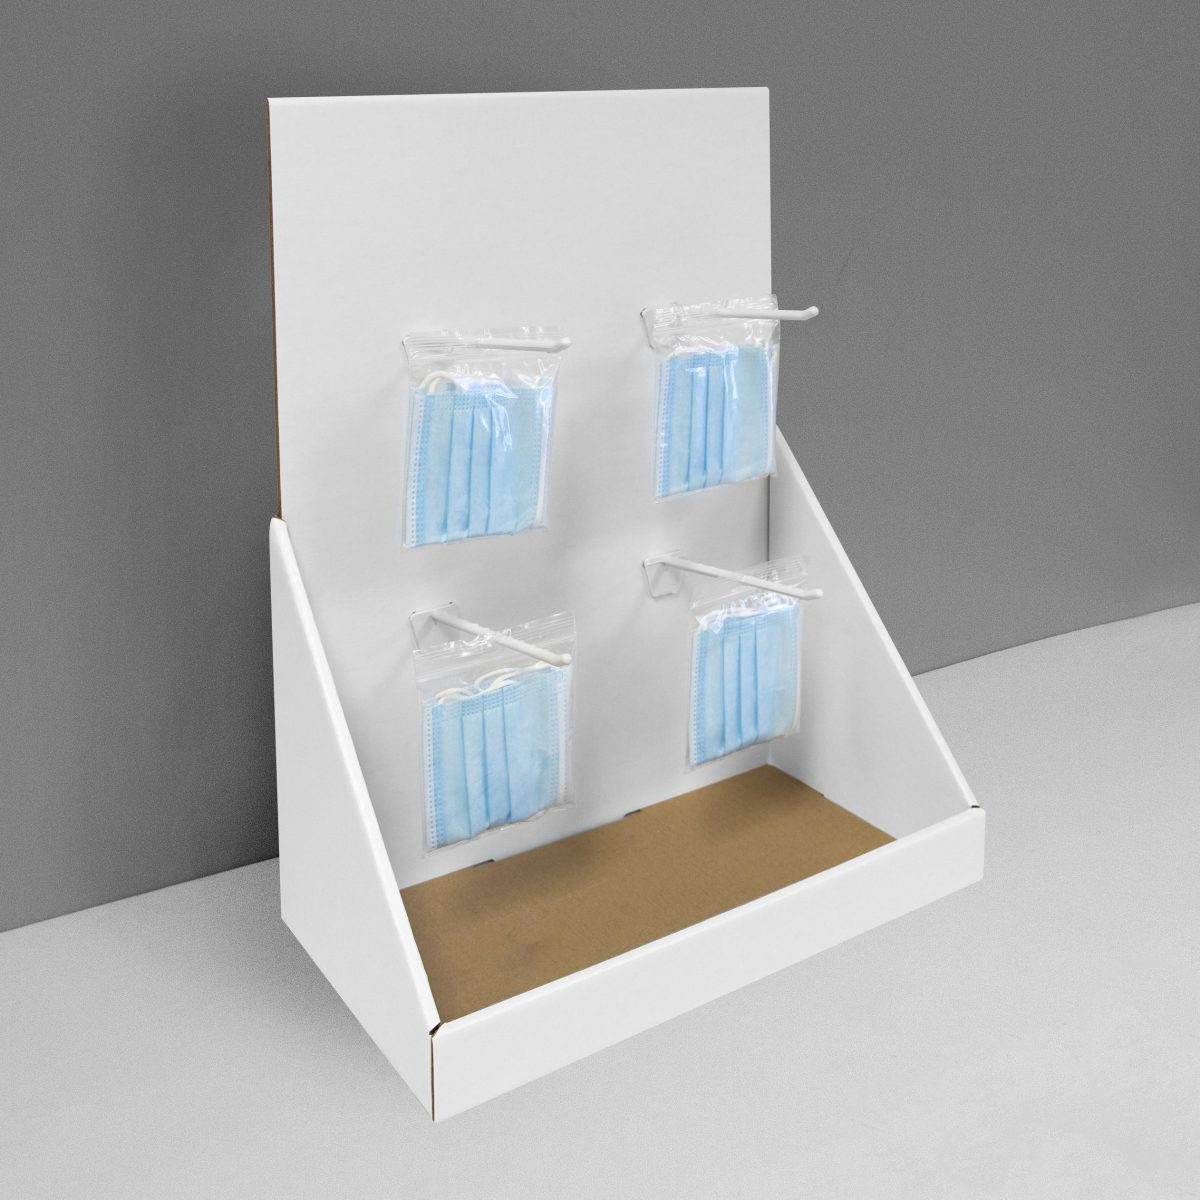 Cardboard counter display with 4 pegs/hooks for face masks - covid-19 face mask - white